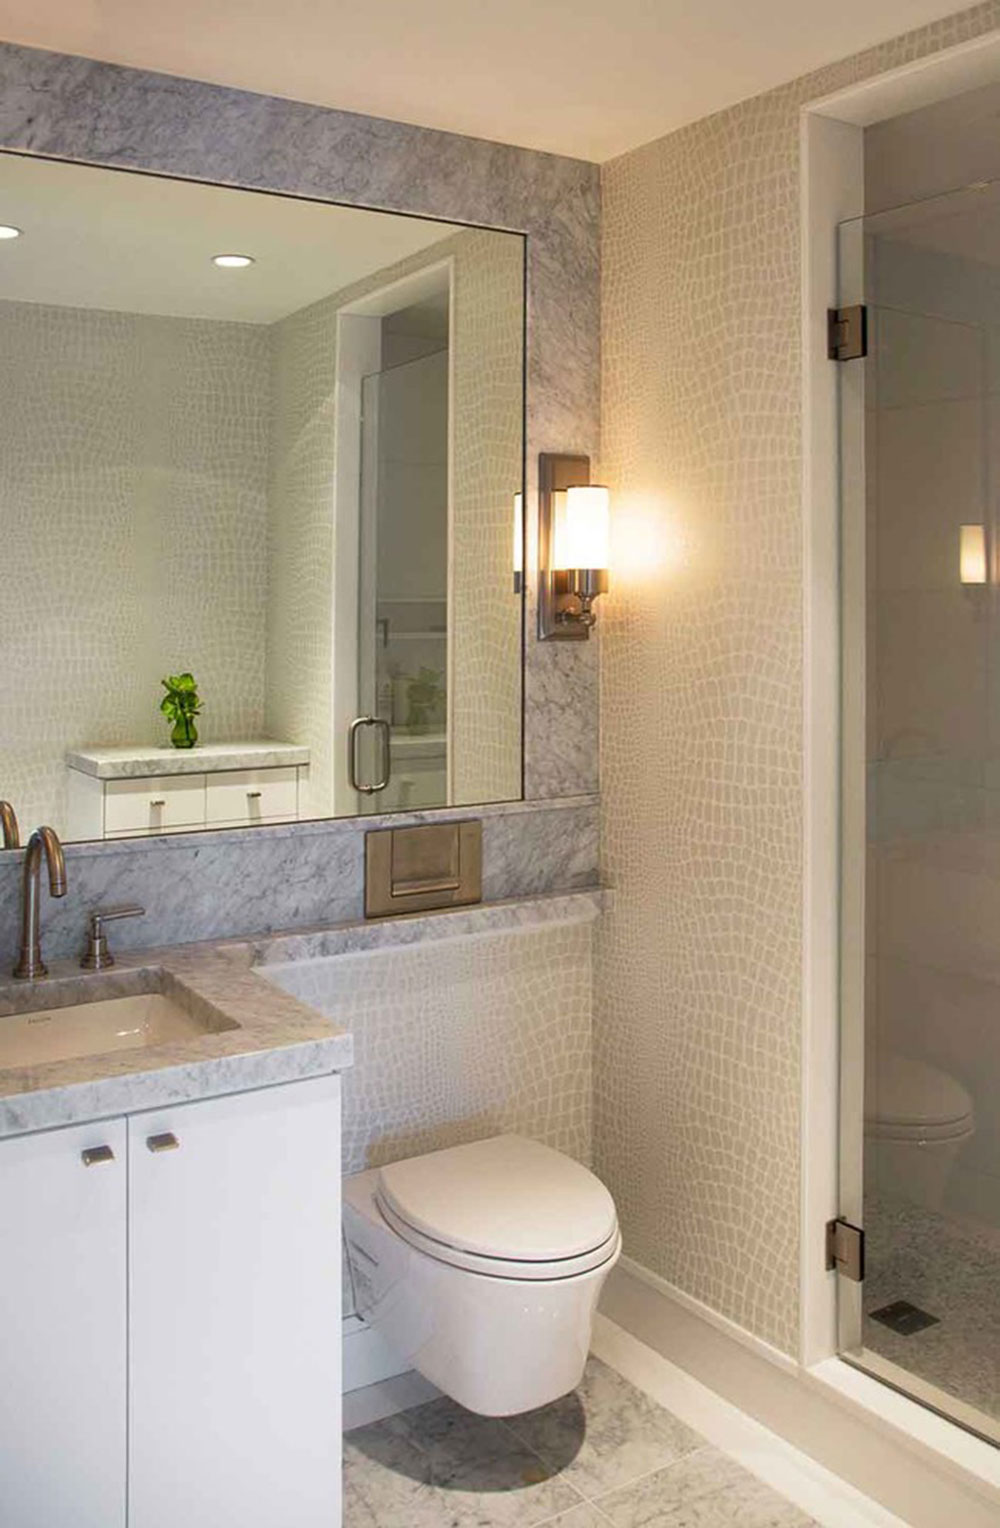 For-more-room-use-wall-mounted toilet-1 wall-mounted toilet ideas